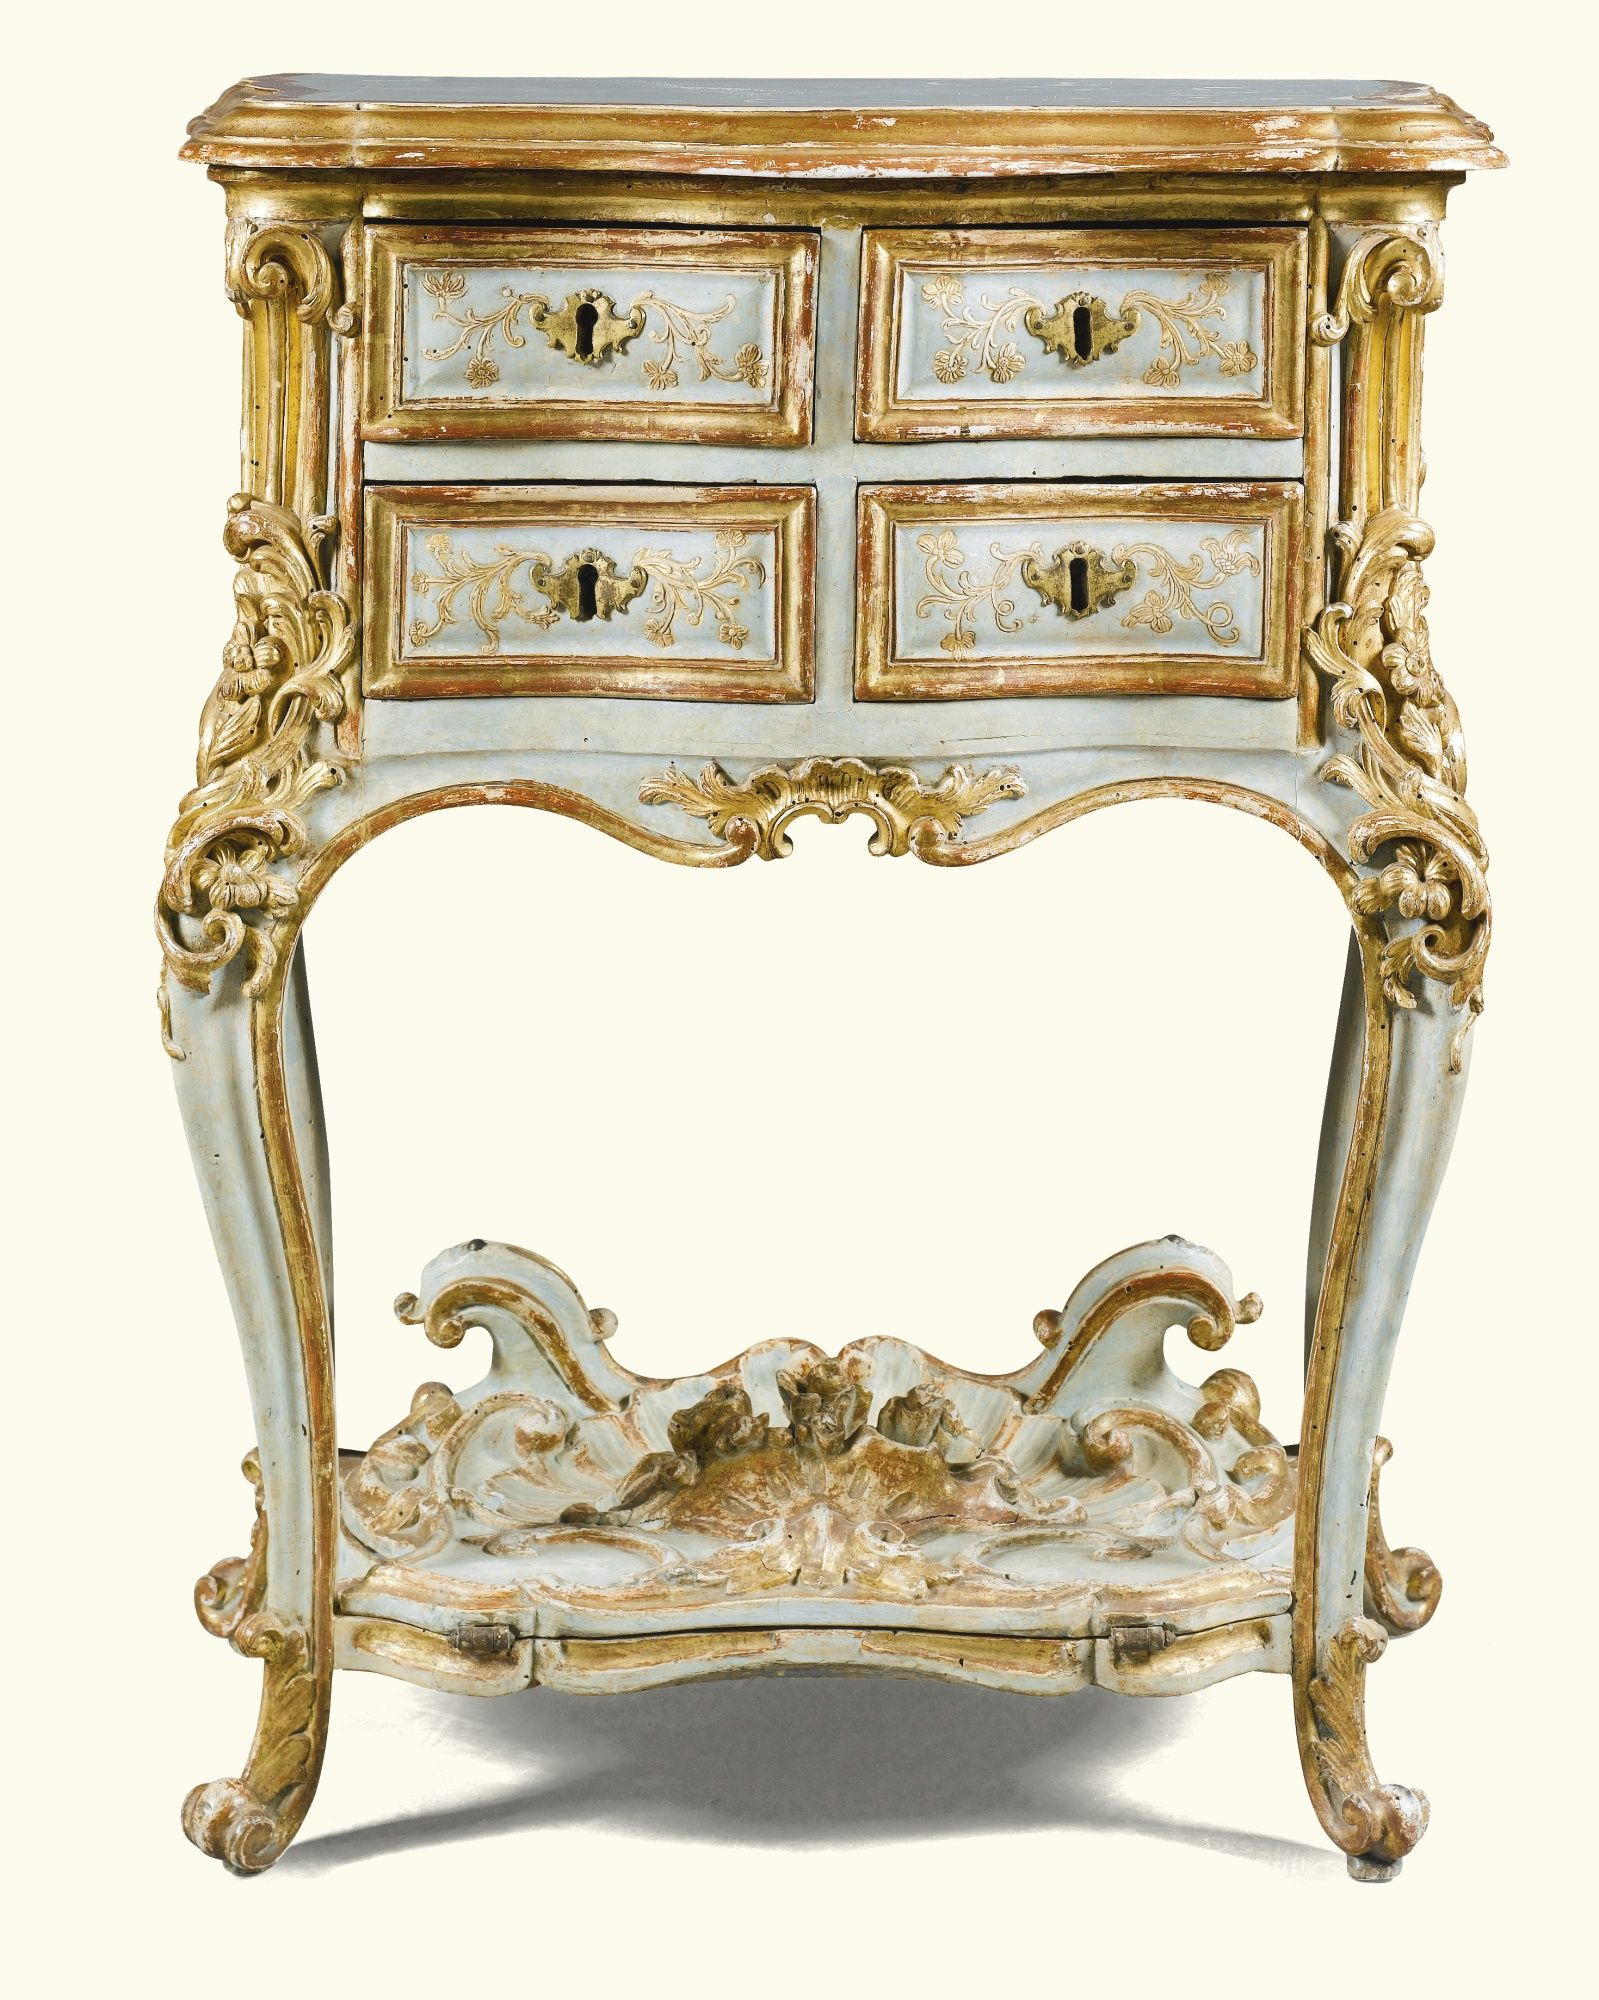 Muebles Estilo Barroco An Italian Pale Green Painted And Parcel Gilt Carved Small